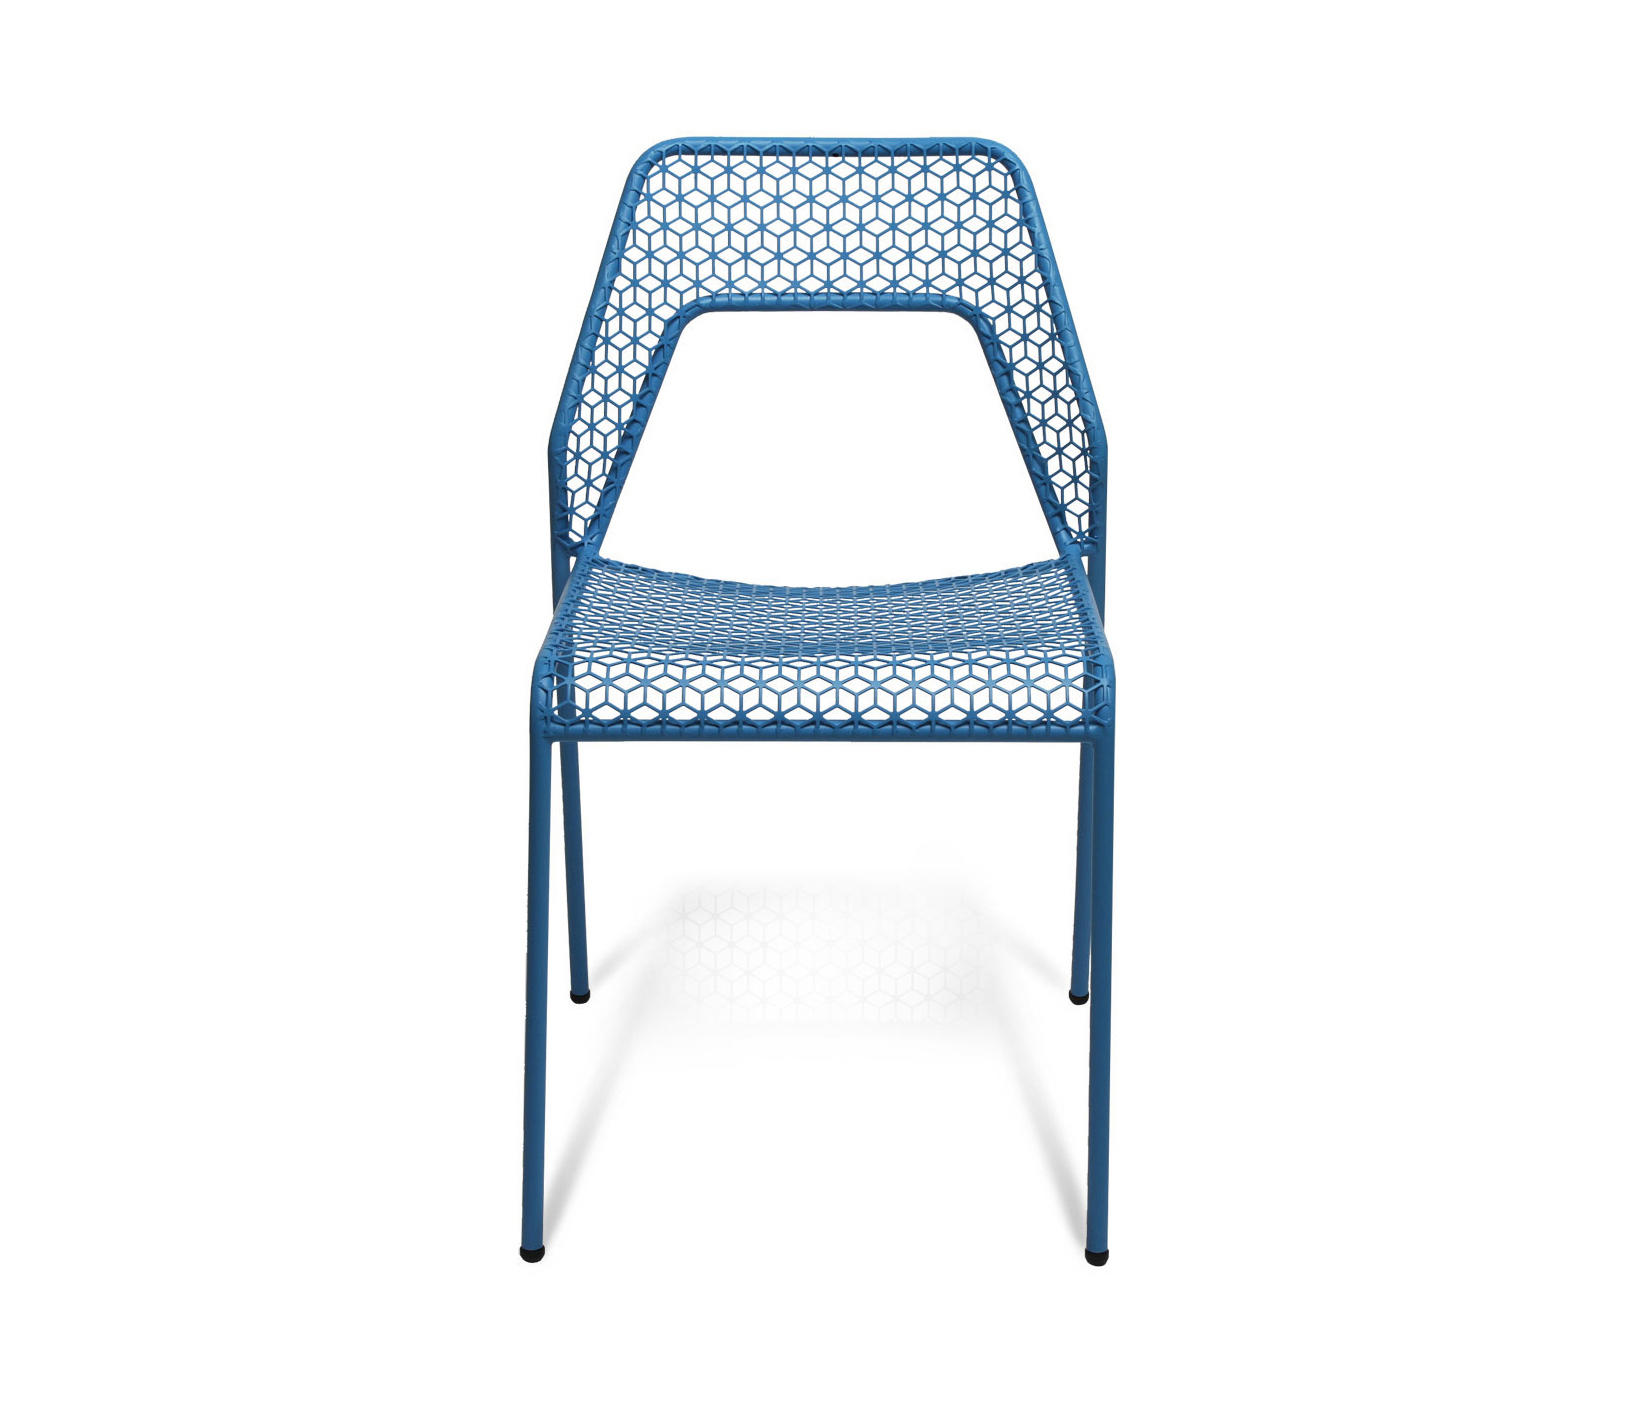 Hot Mesh Chair Chairs From Blu Dot Architonic